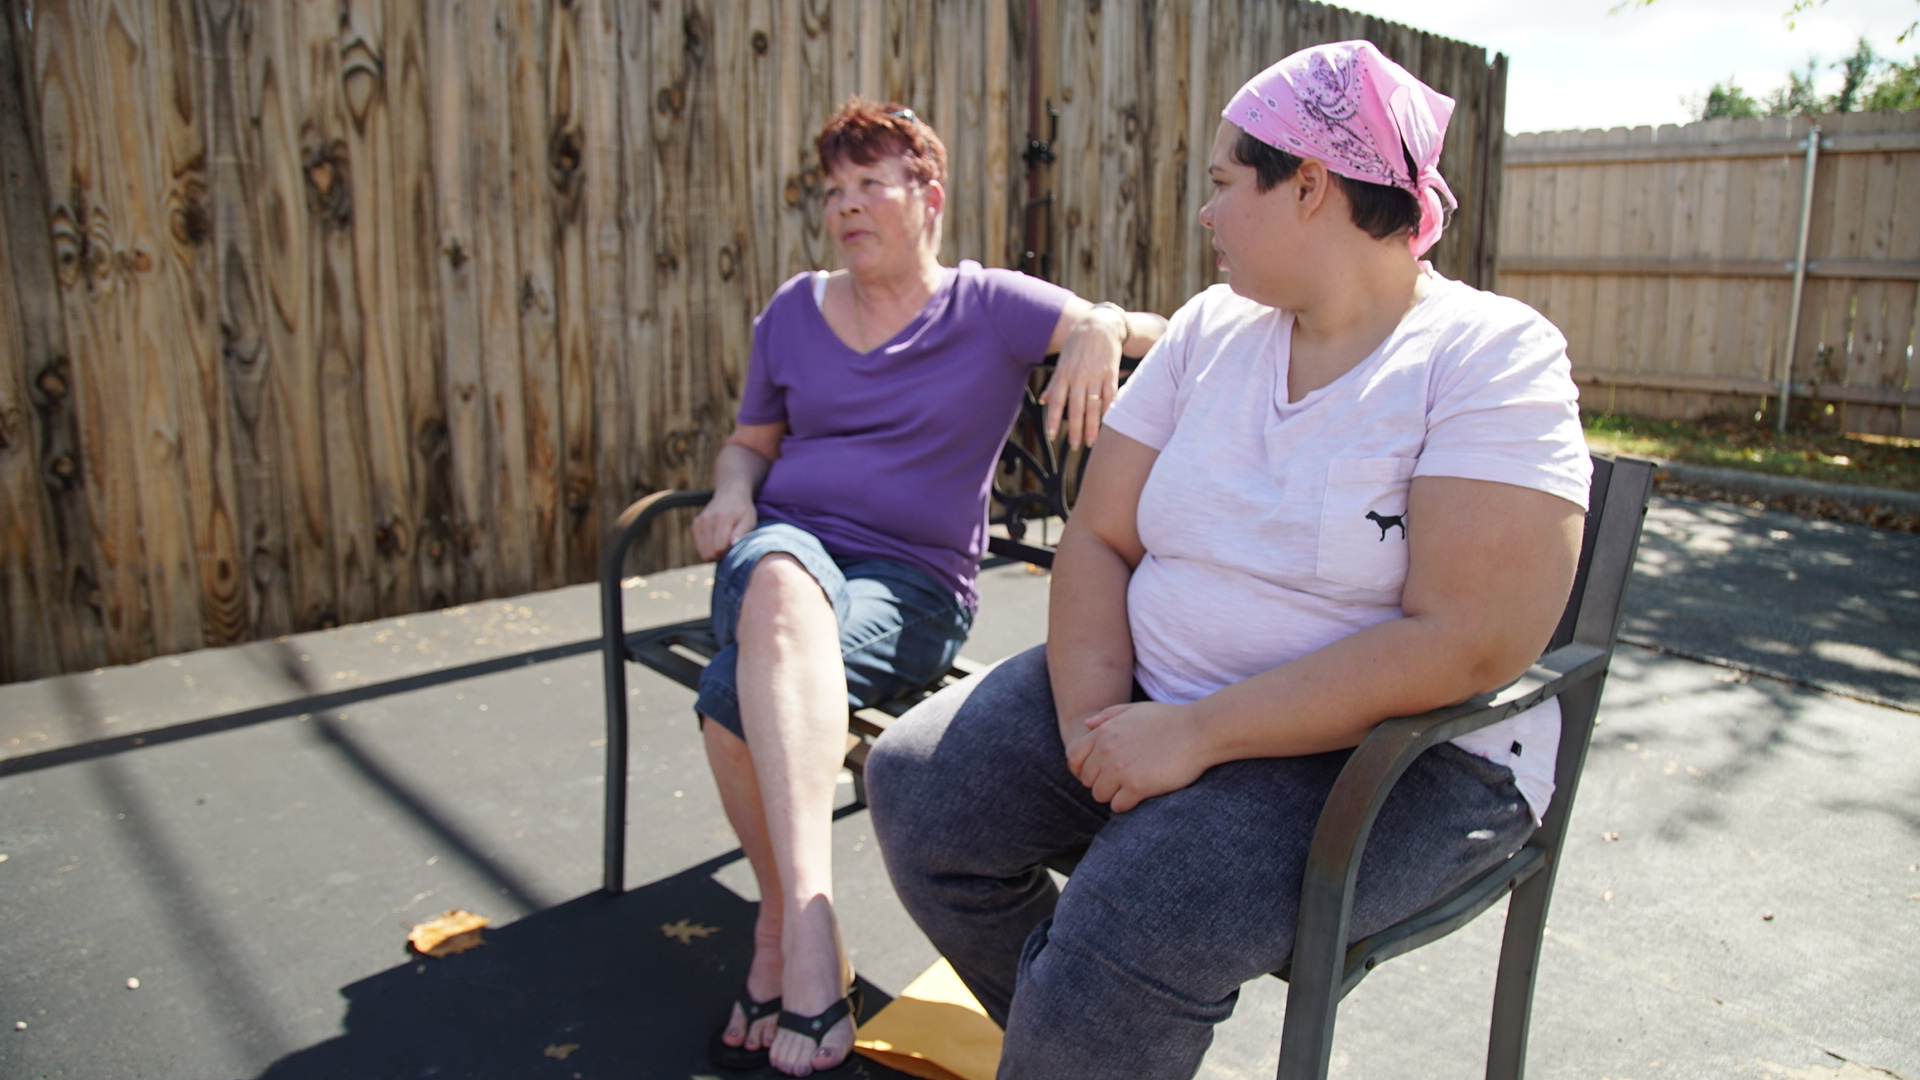 Samantha and her mother Pamela drove from Dallas to Oklahoma City for Samantha's abortion.